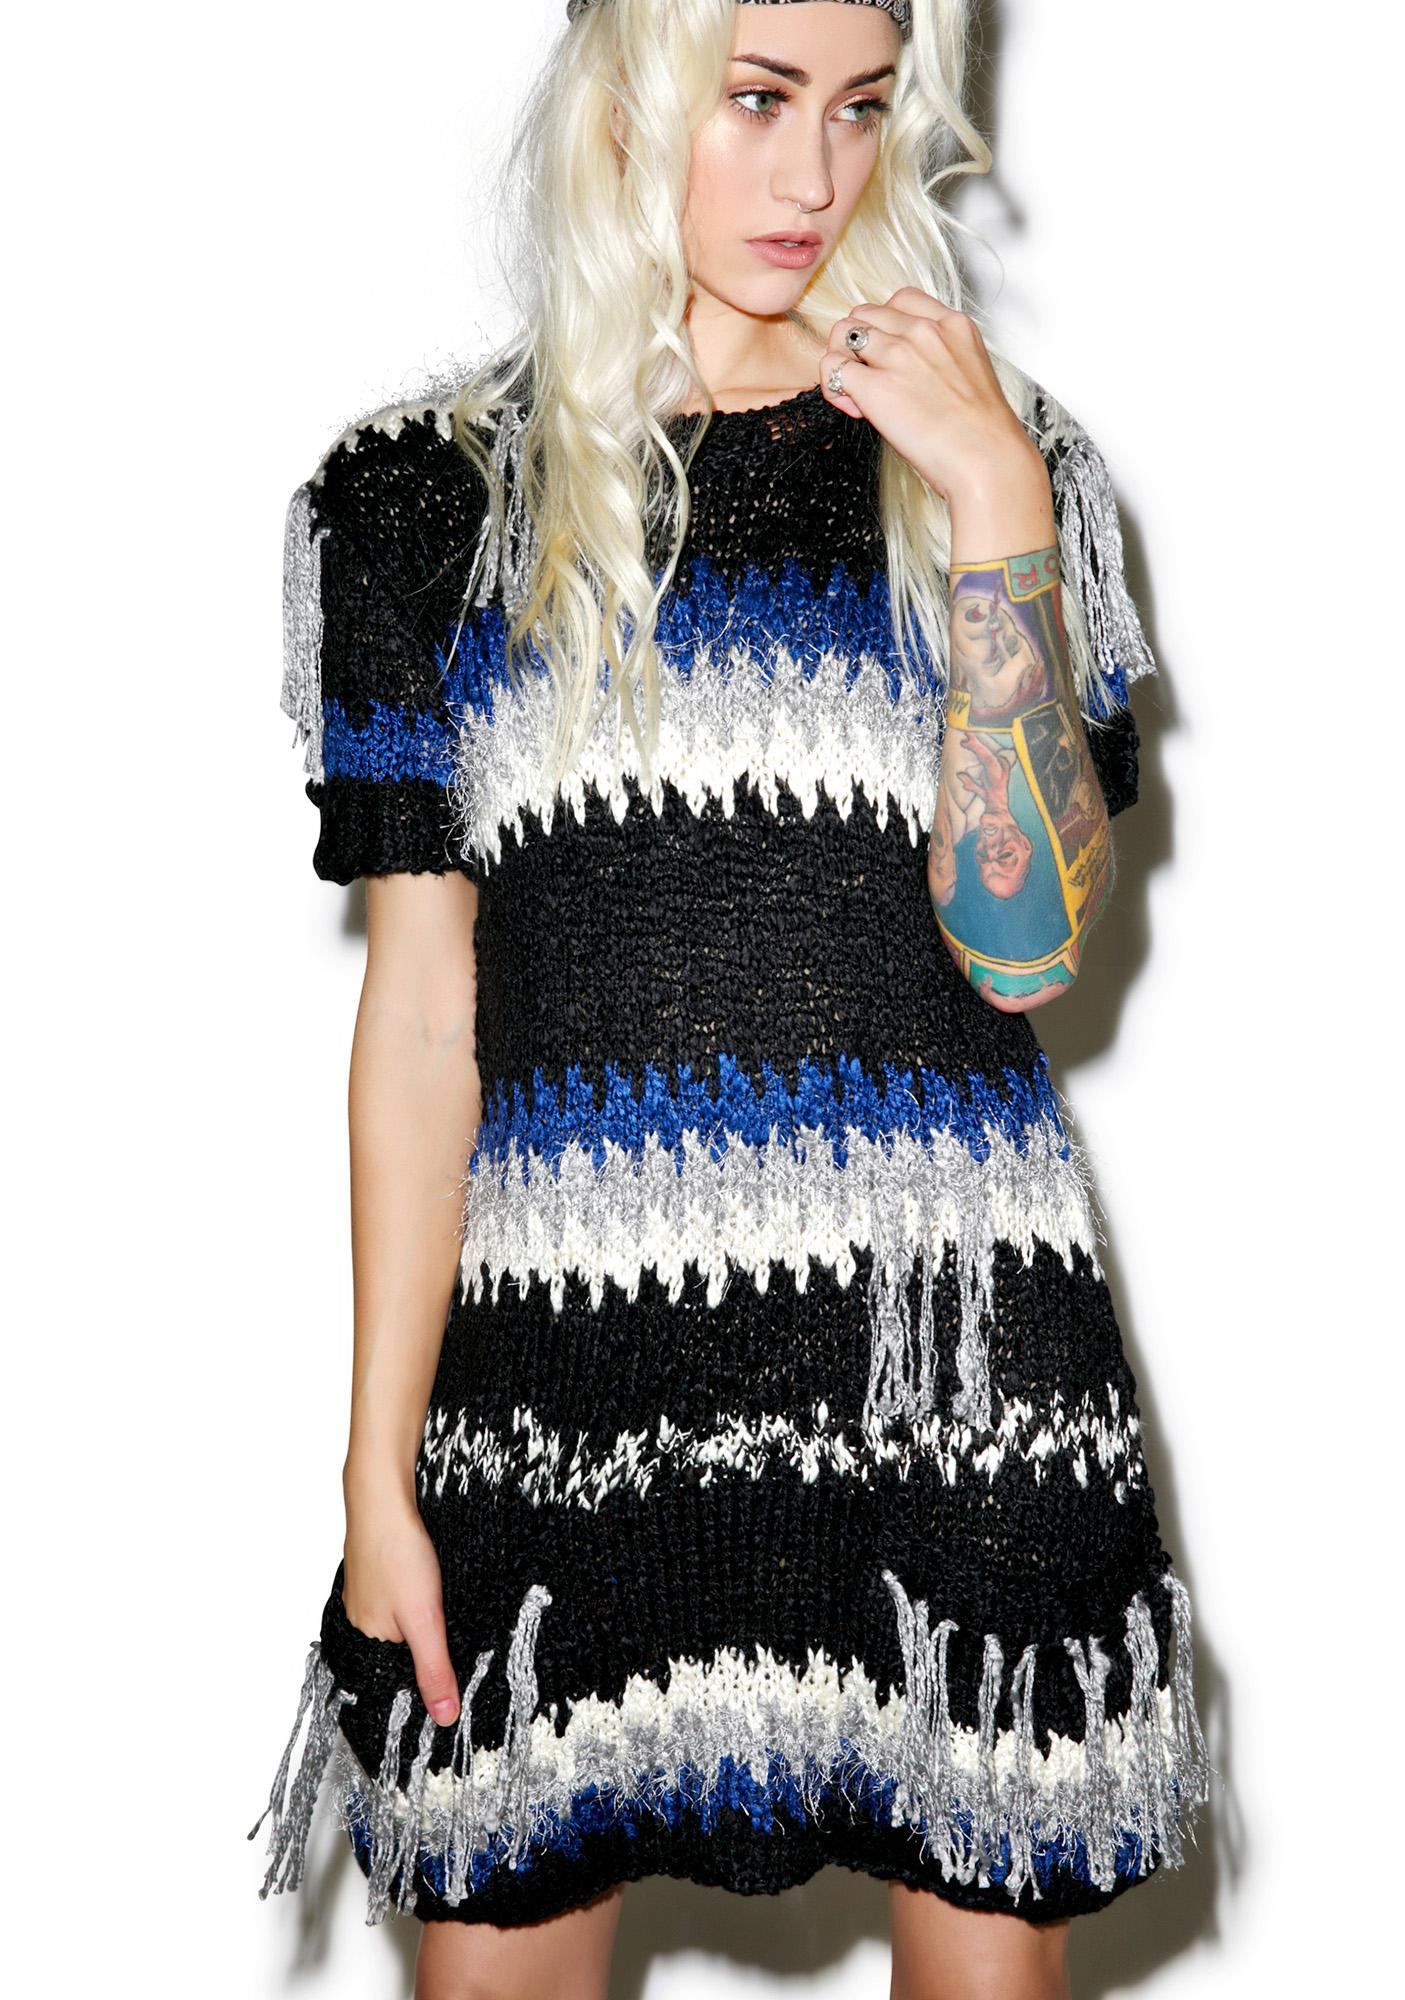 For Love & Lemons Black 'N Blue Crosby Fringe Dress